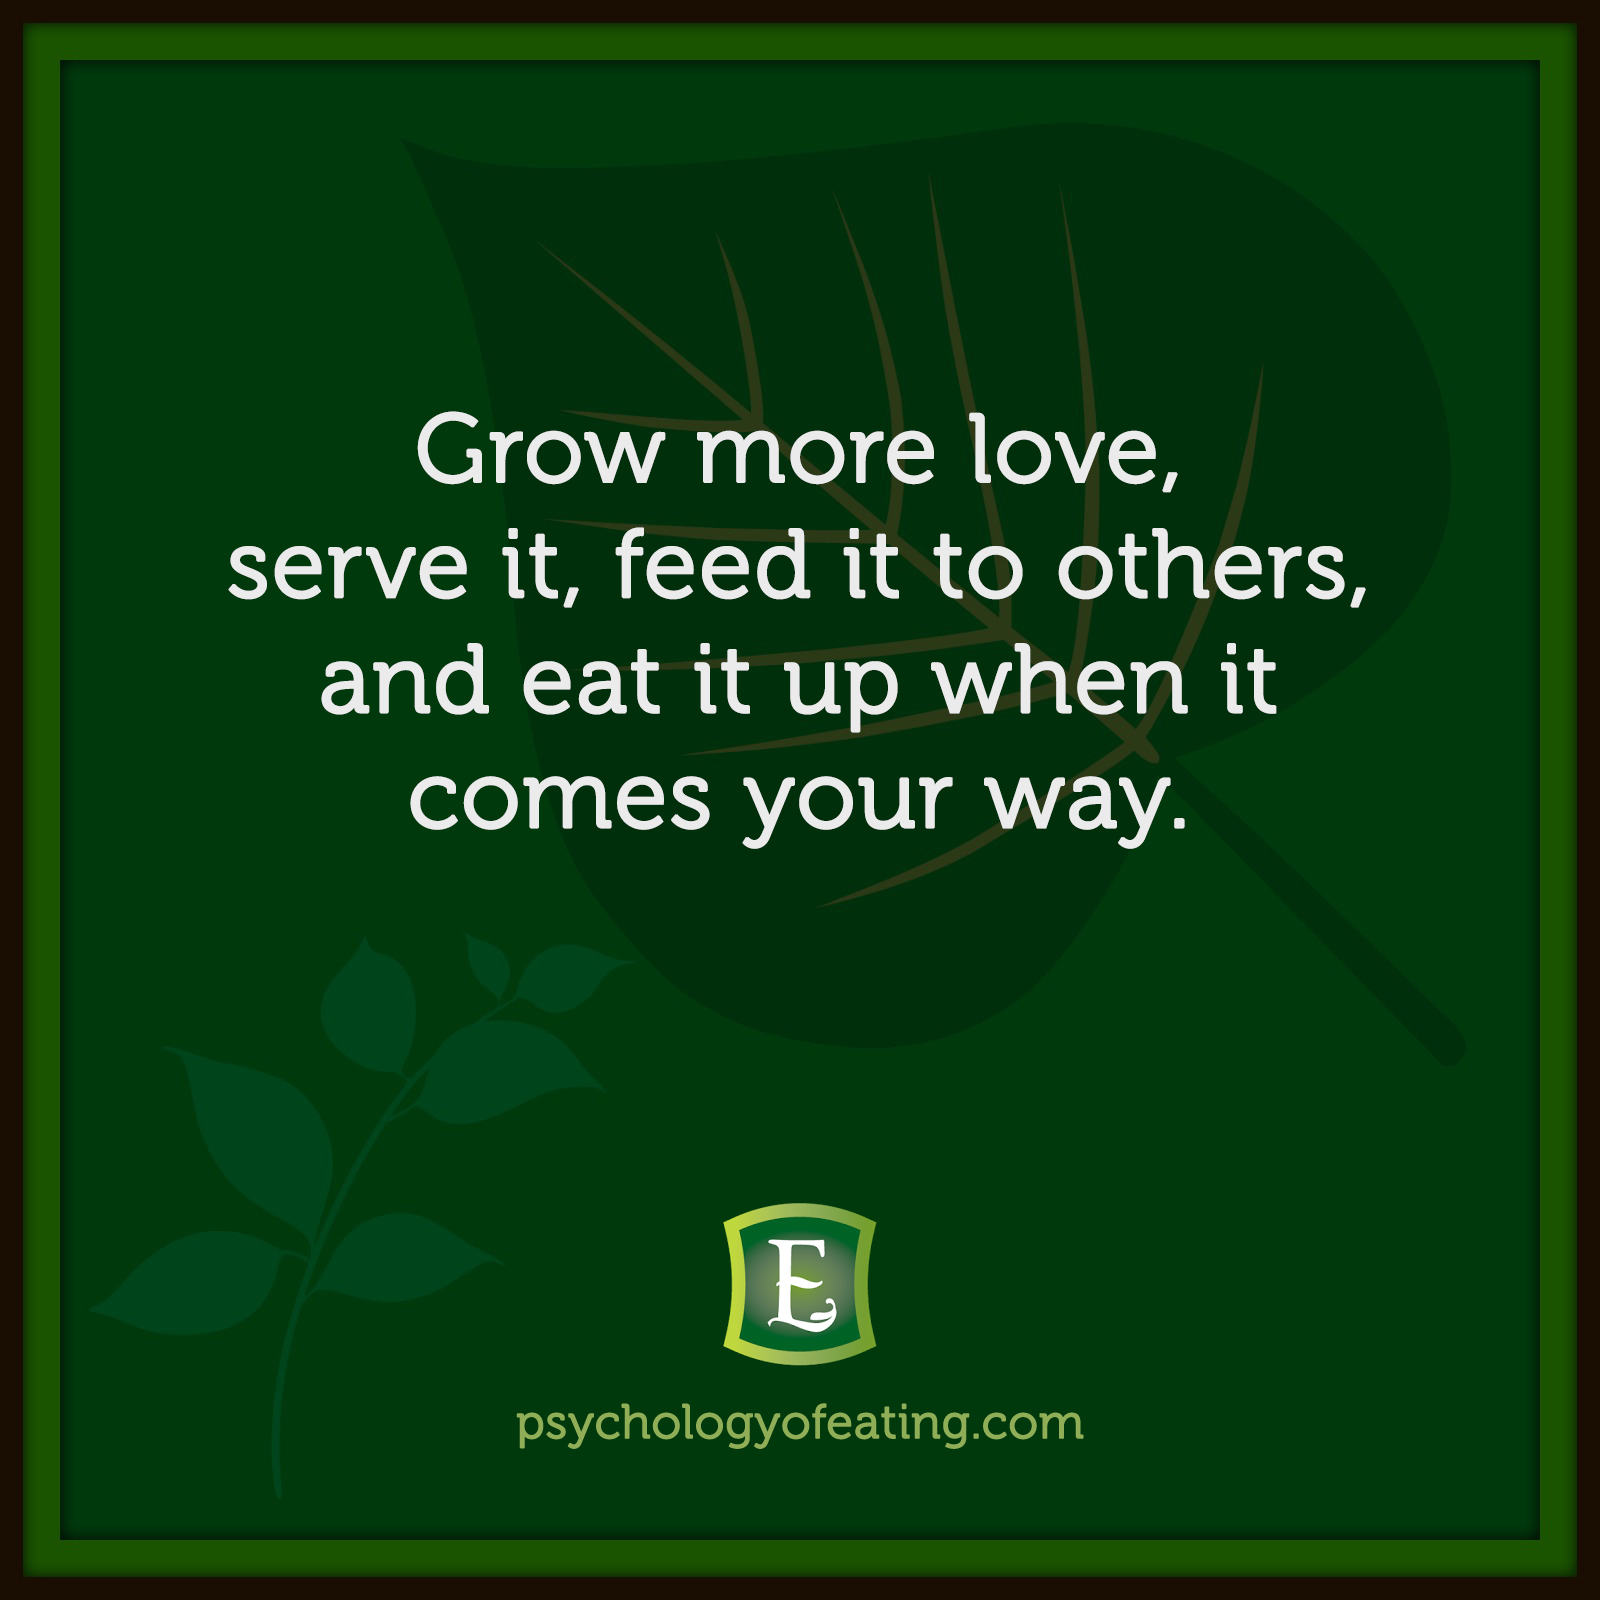 Grow more love, serve it, feed it to others, and eat it up when it comes your way.  #health #nutrition #eatingpsychology #IPE